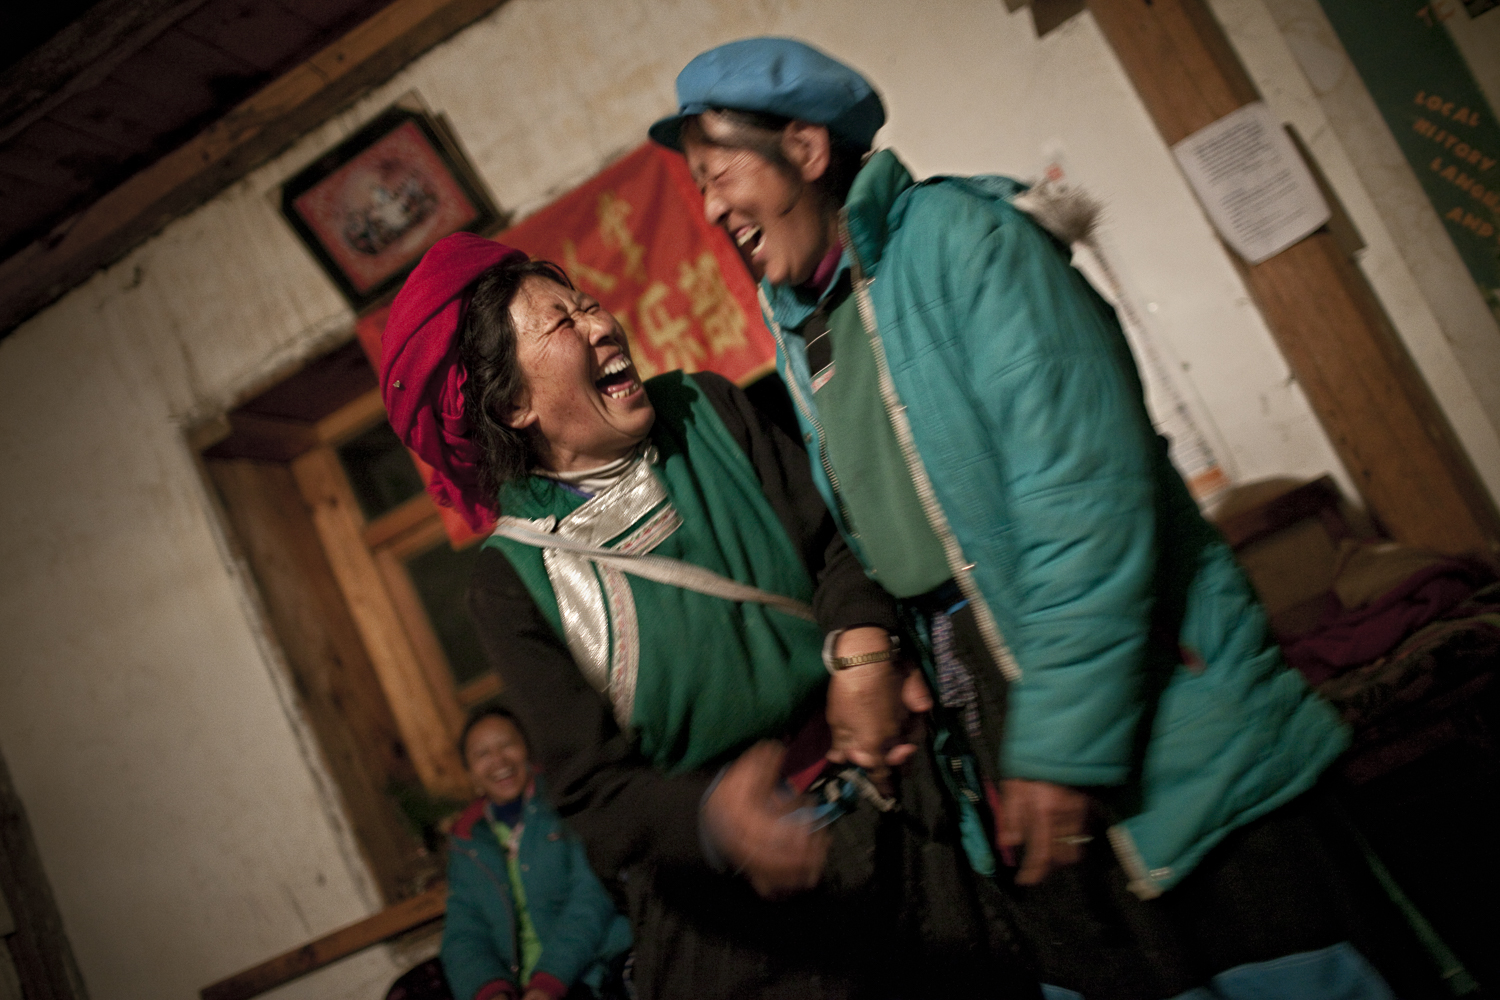 Dimaluo, Yunnan. Dimaluo is a Tibetan Catholic village on a tributary to the Nujiang called the same name. The villagers celebrate New Years by drinking corn based alchohol, singing Tibetan songs and dancing. For Tibetans in this area its a challenge to maintain their cultural practices and language. Since the area is only partially Tibetan the schools don't teach Tibetan language or culture.